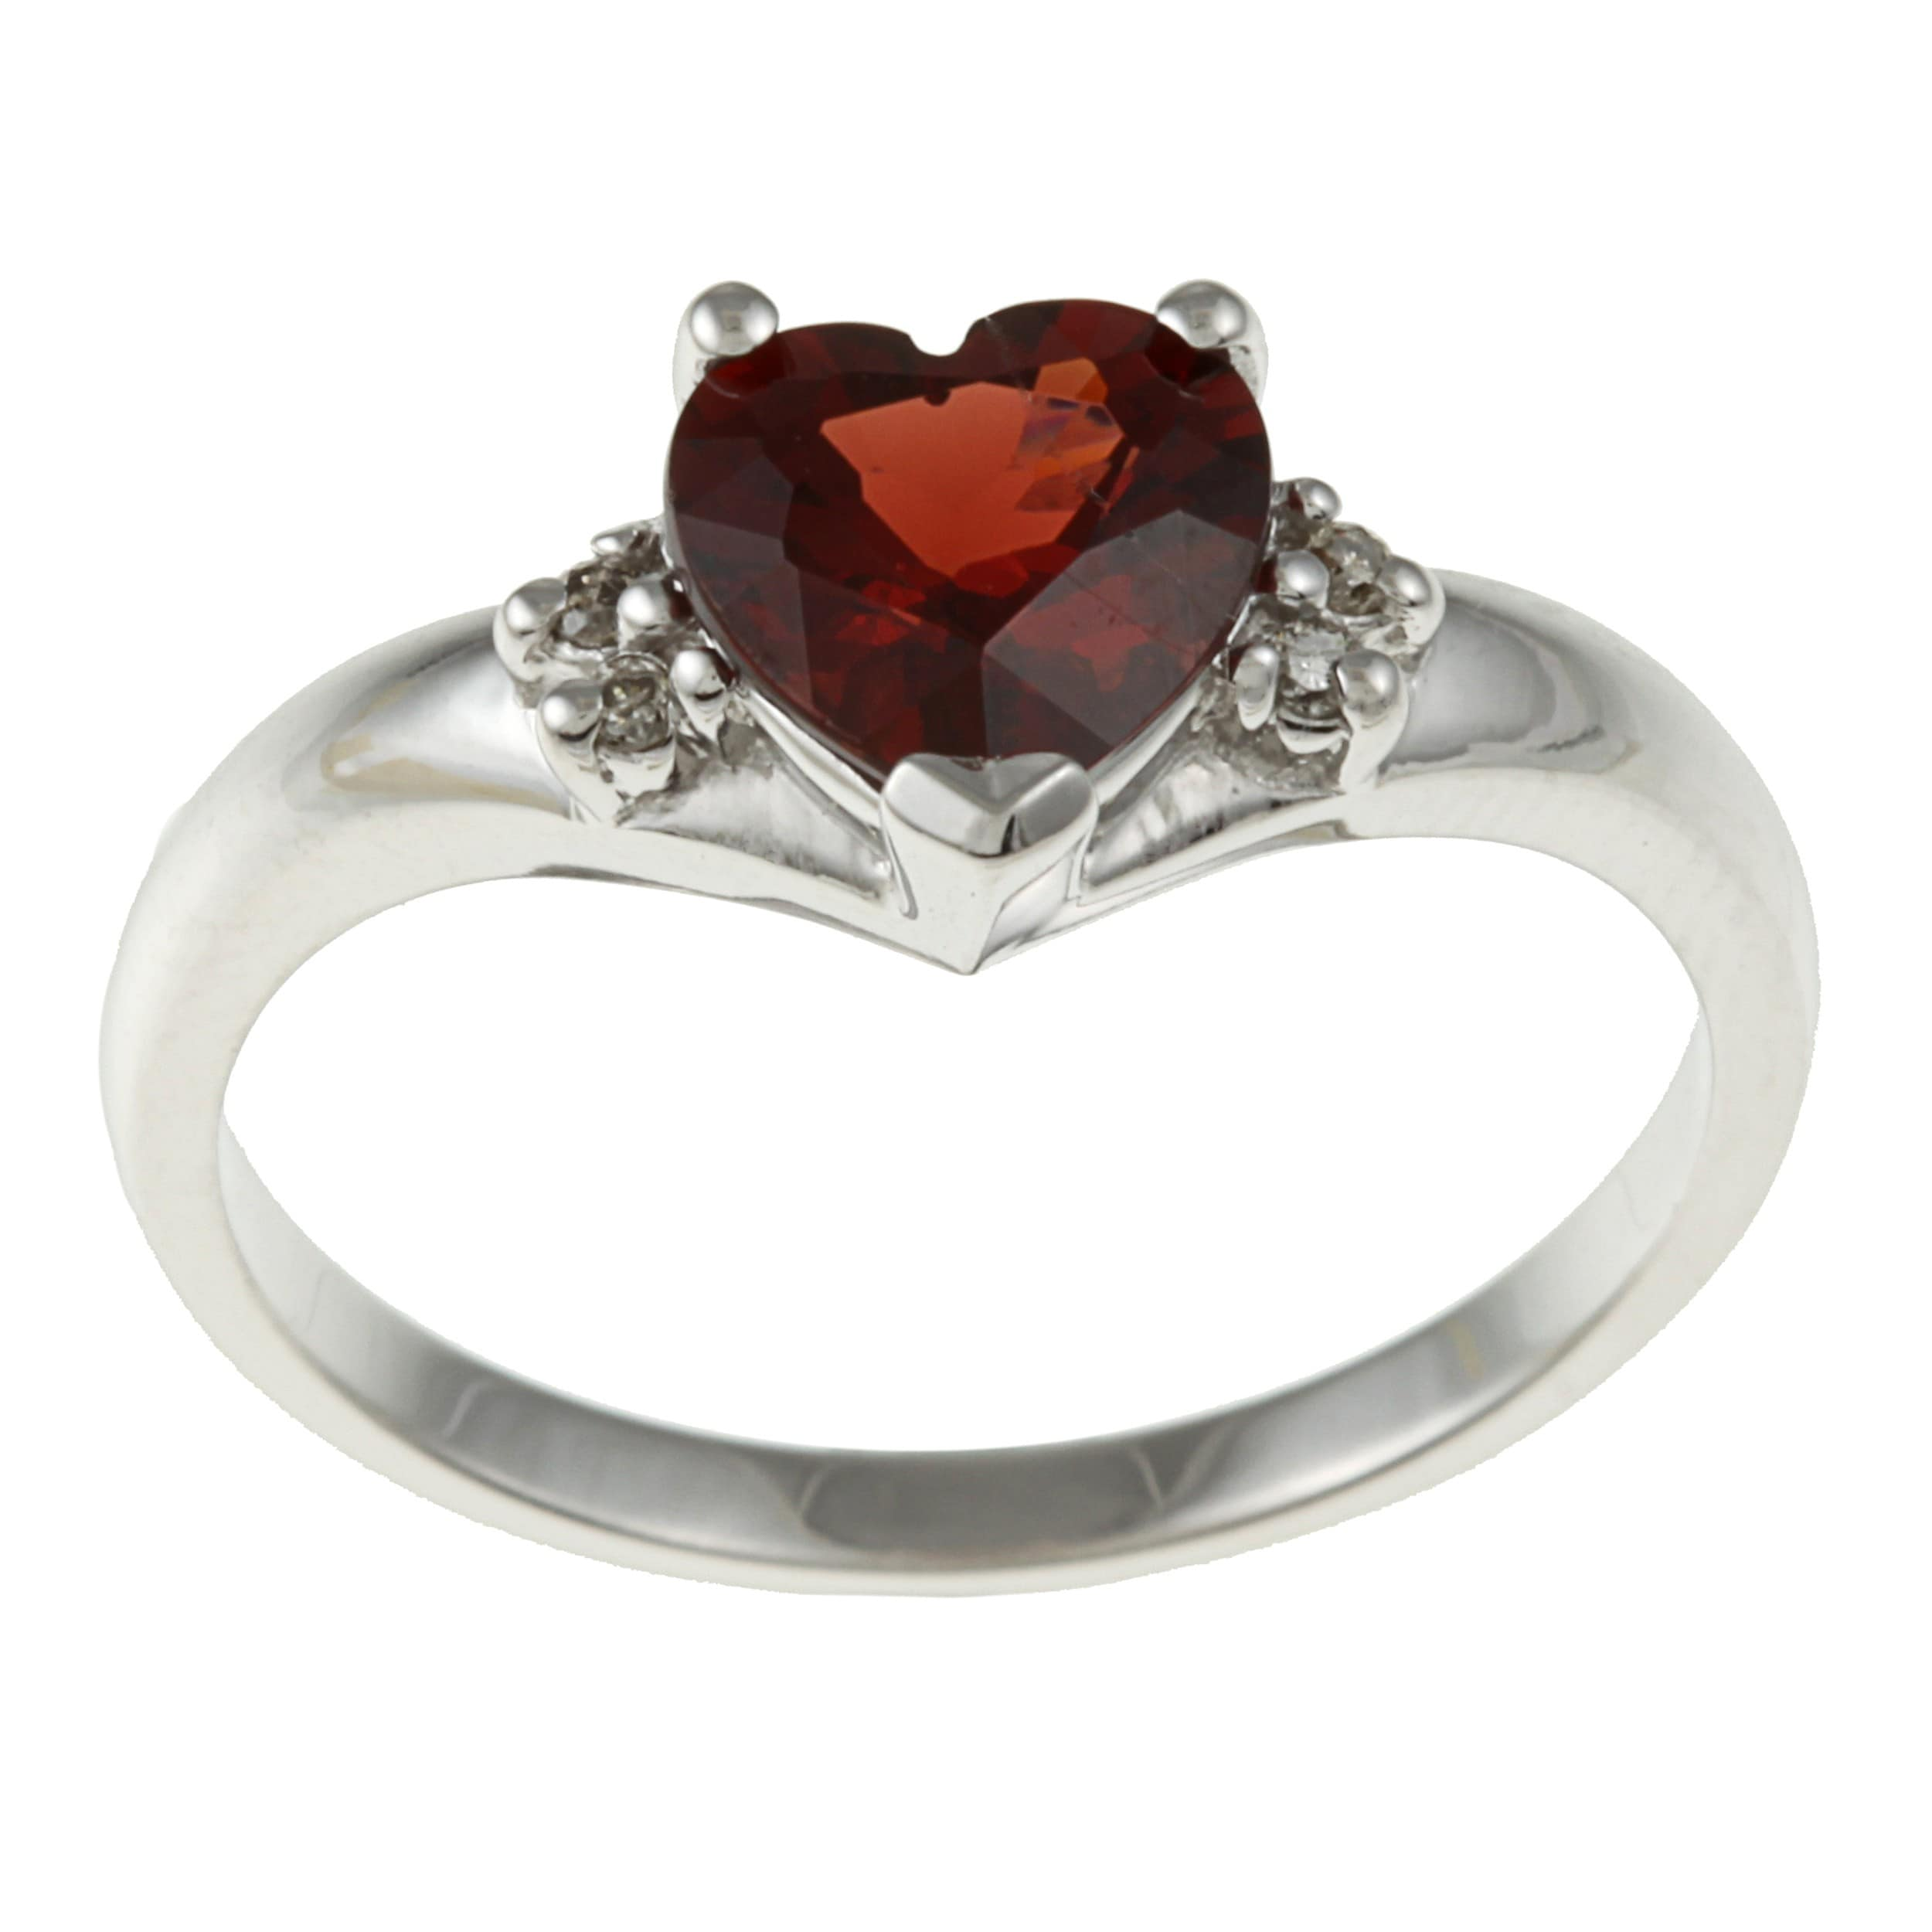 rose gold diamond diamonds tw rhodolite in strawberry garnet ring raspberry white levian and vanilla chocolate with